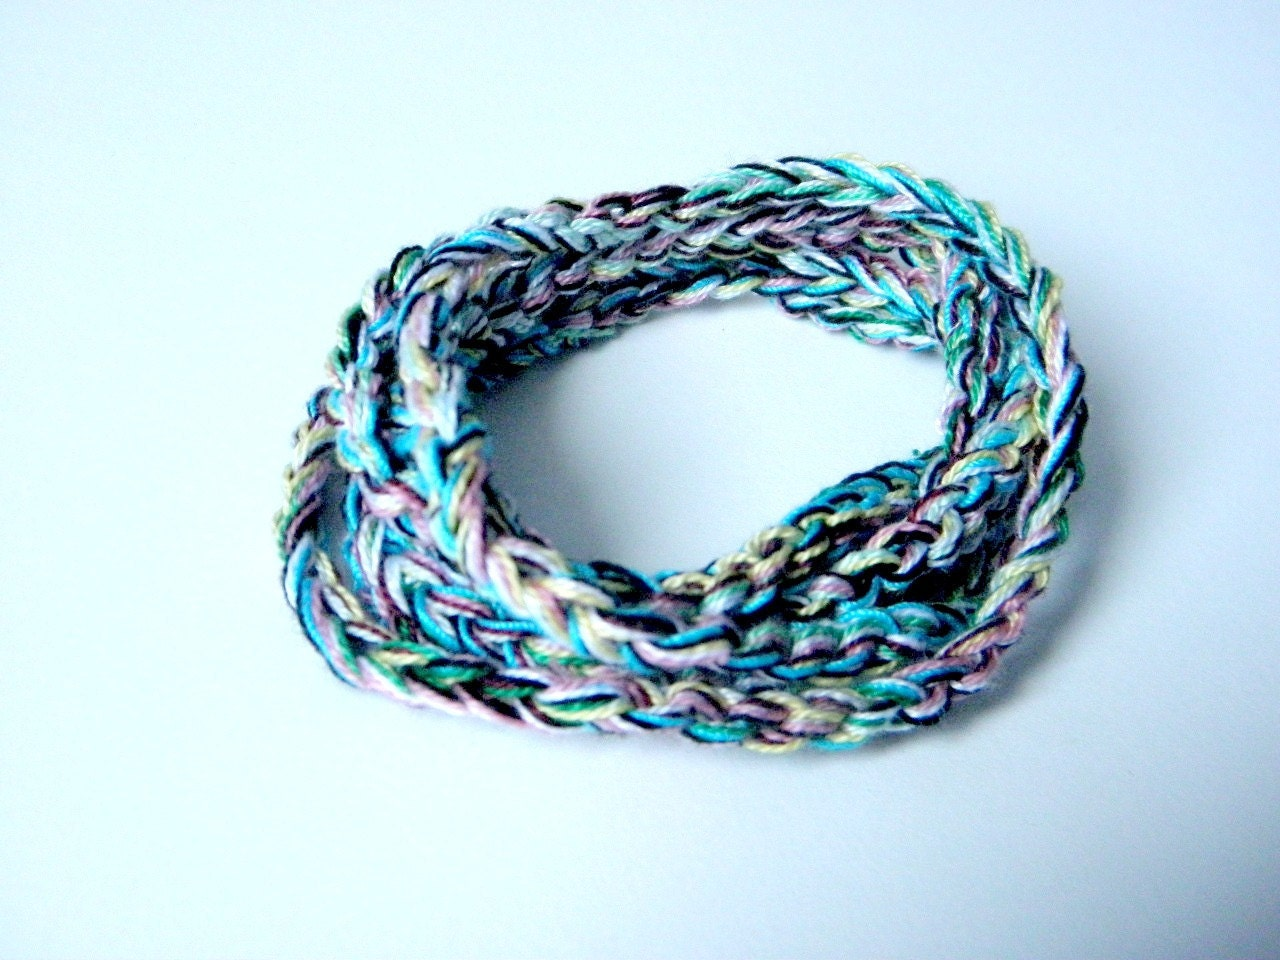 Crochet bracelet made of multicolor cotton